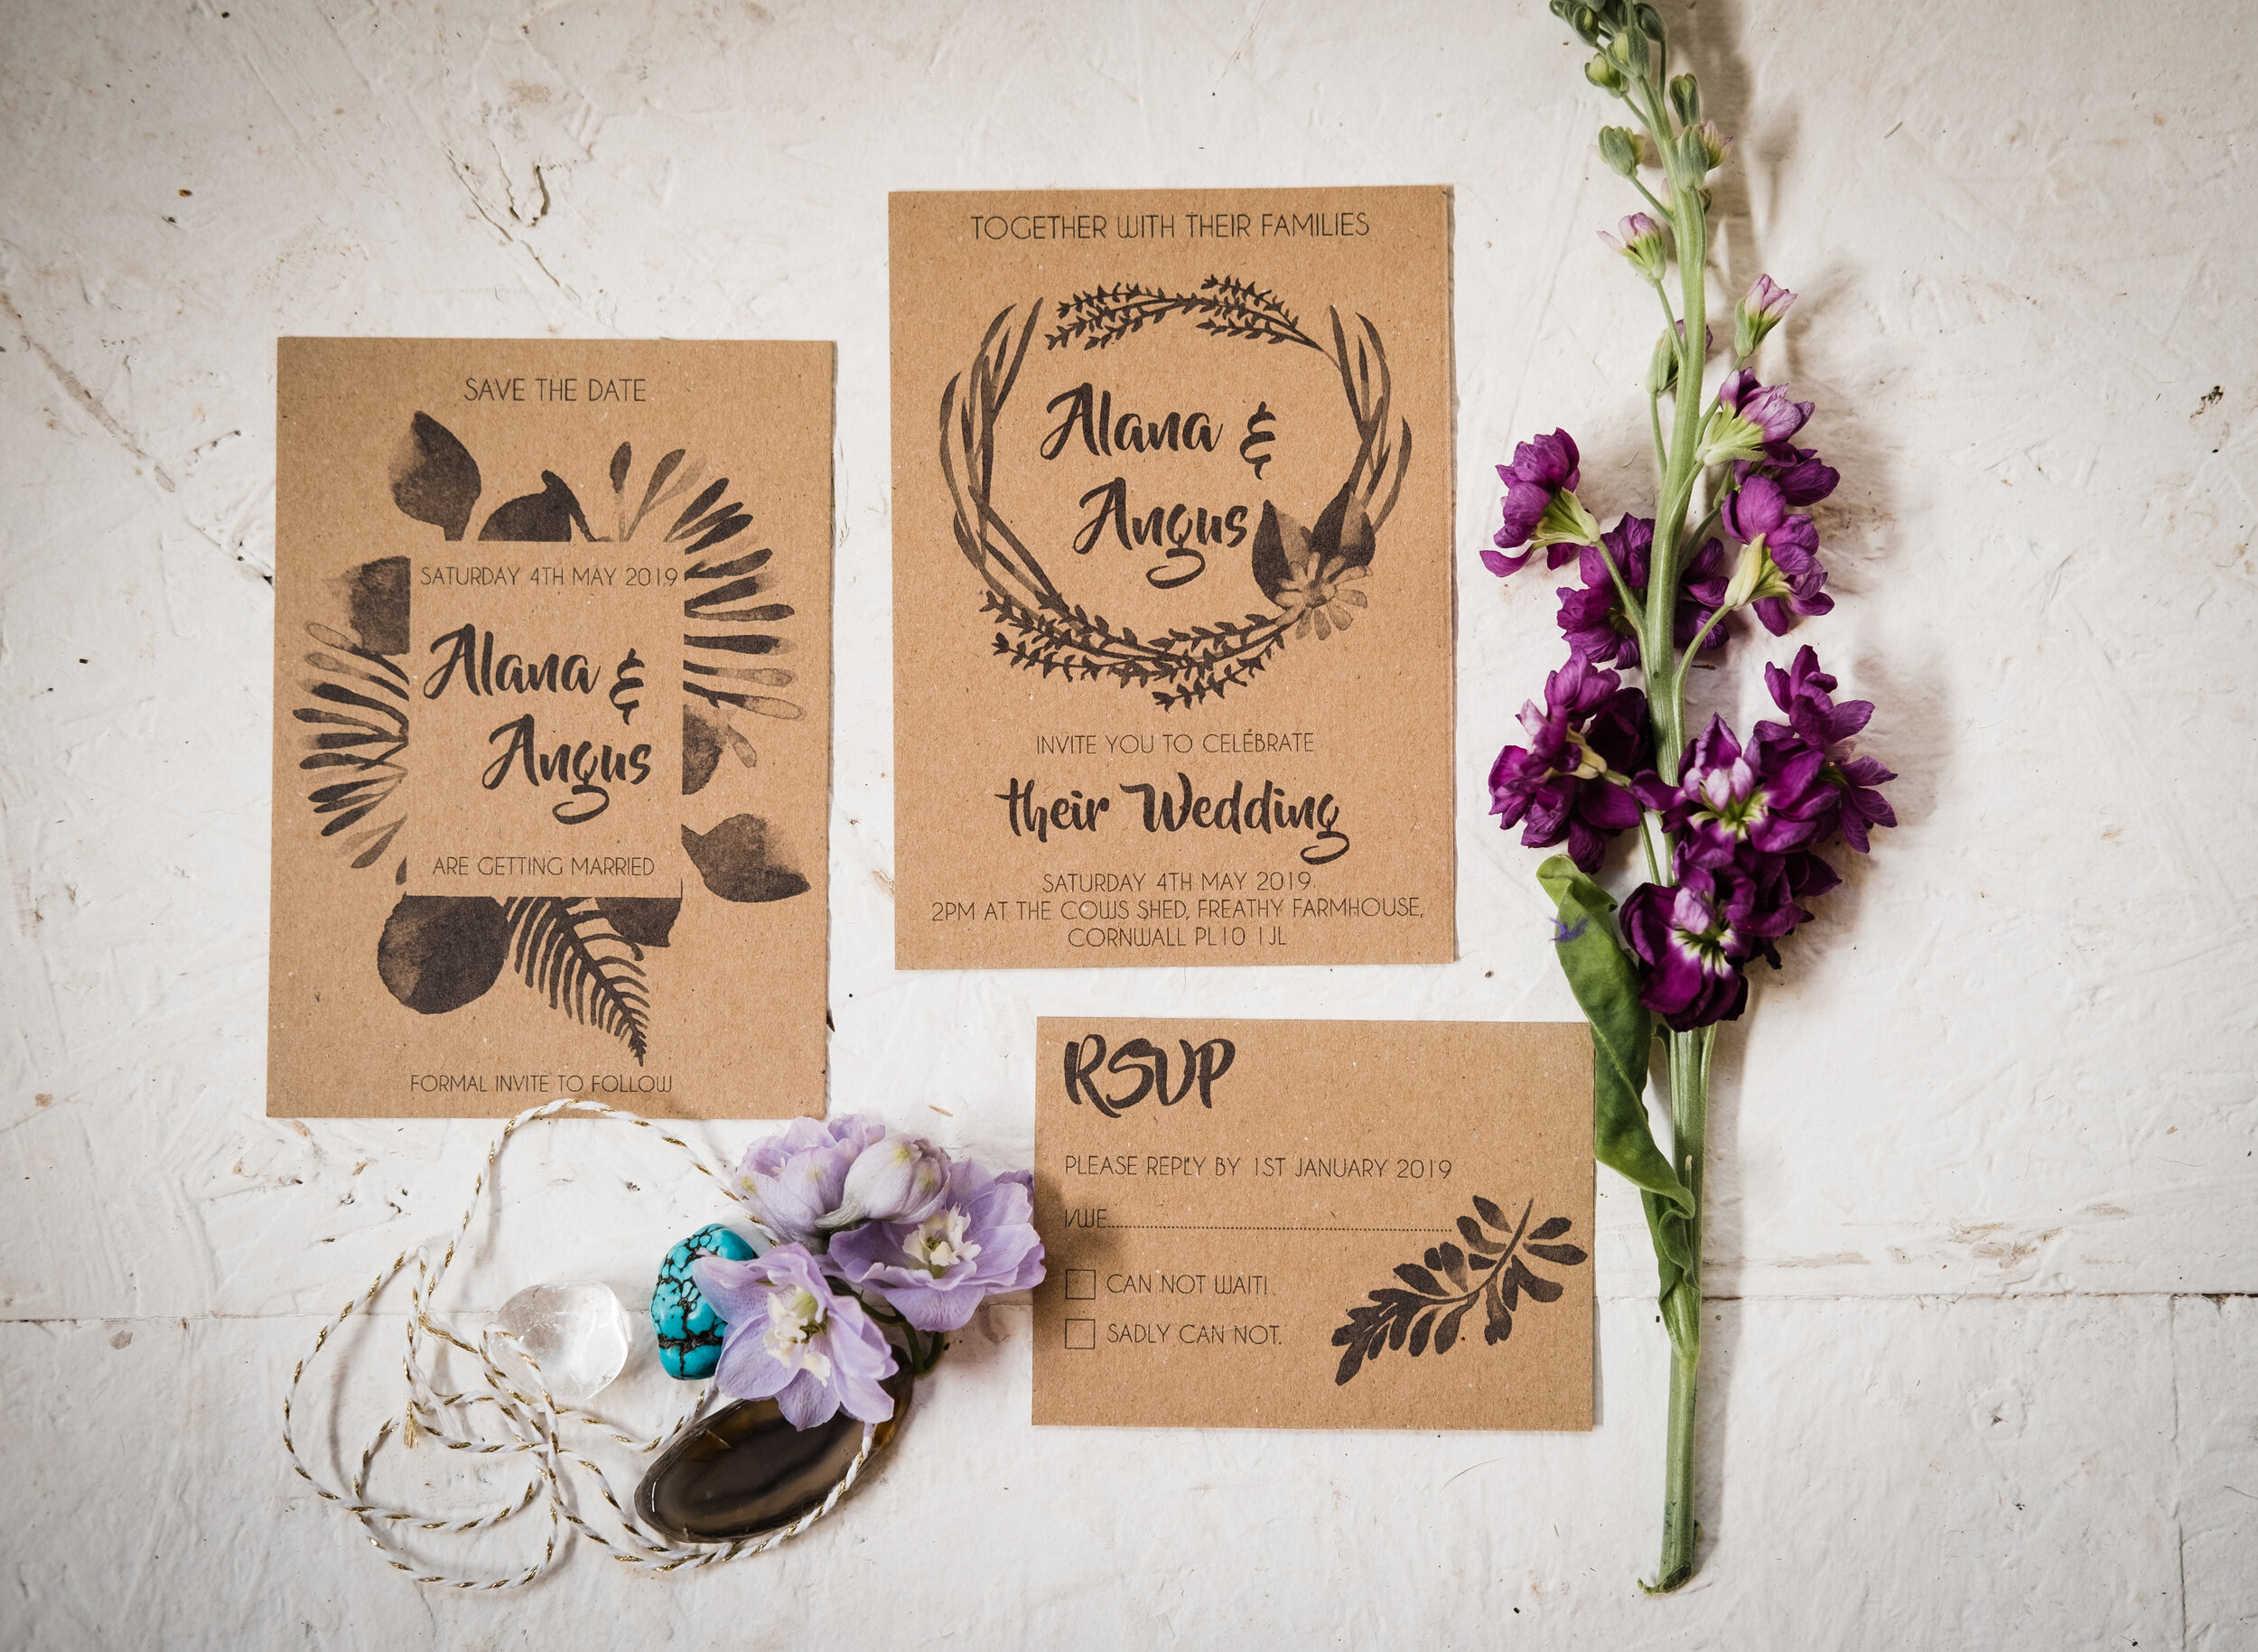 Recycled Card Wedding Invite